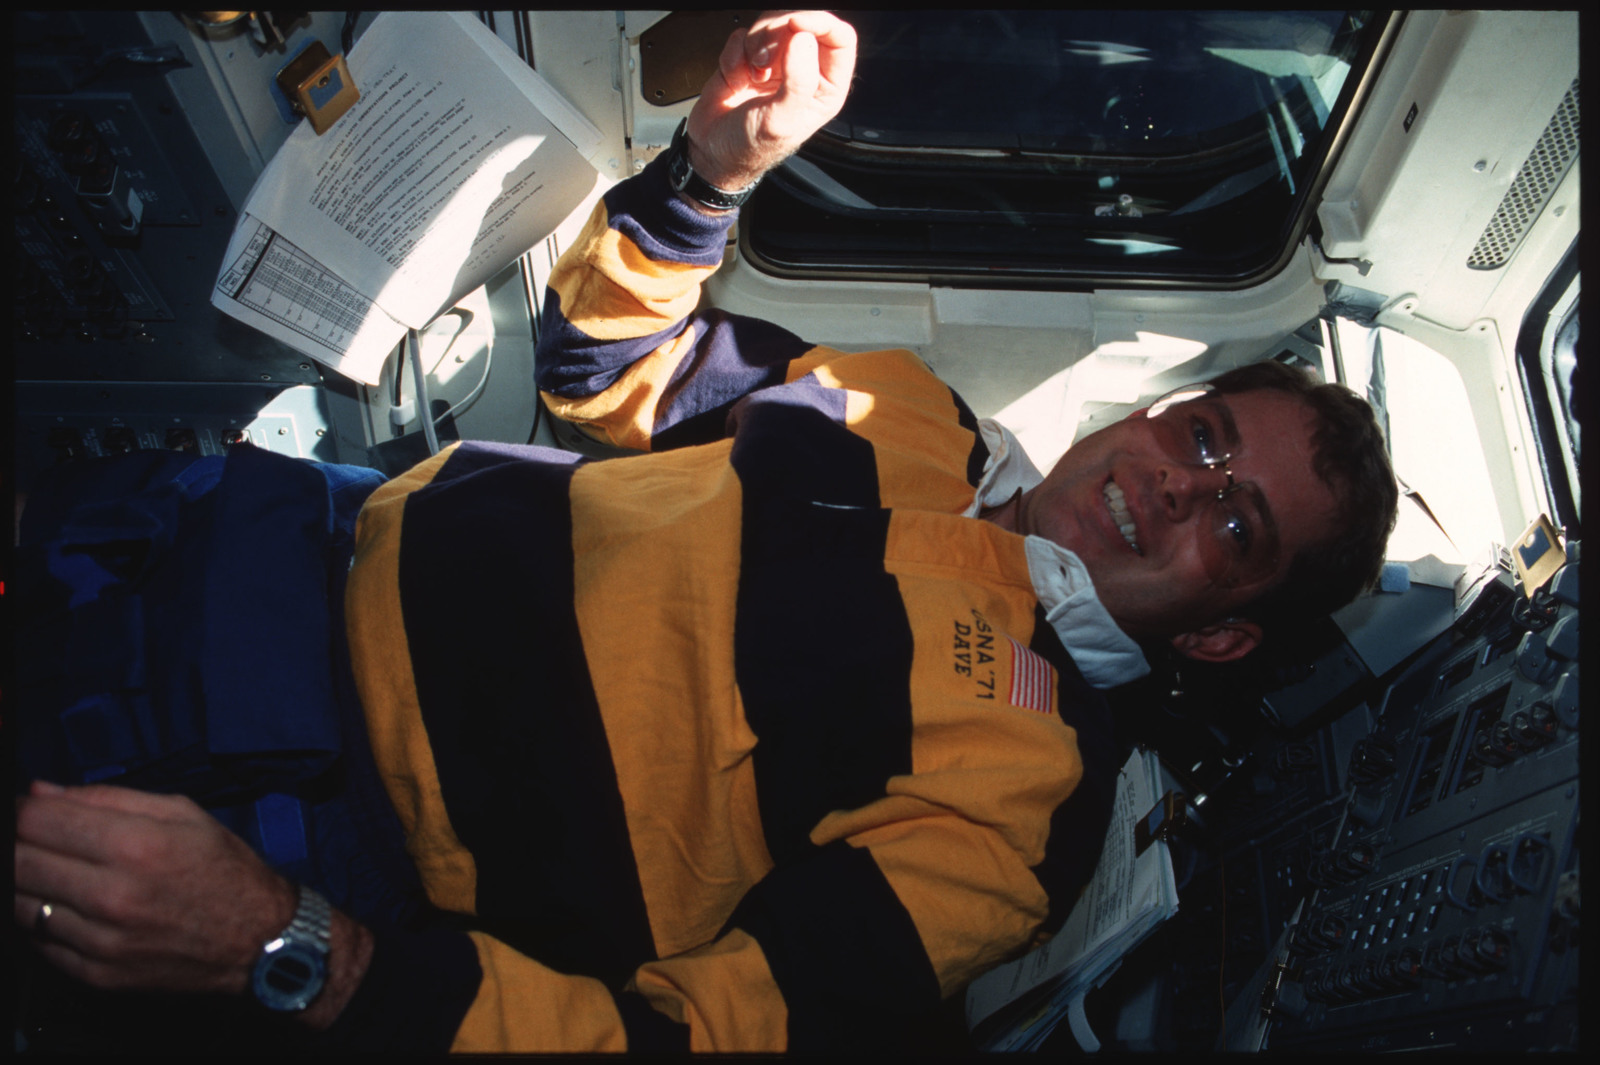 S45-16-021 - STS-045 - STS-45 crewmembers engage in various activities